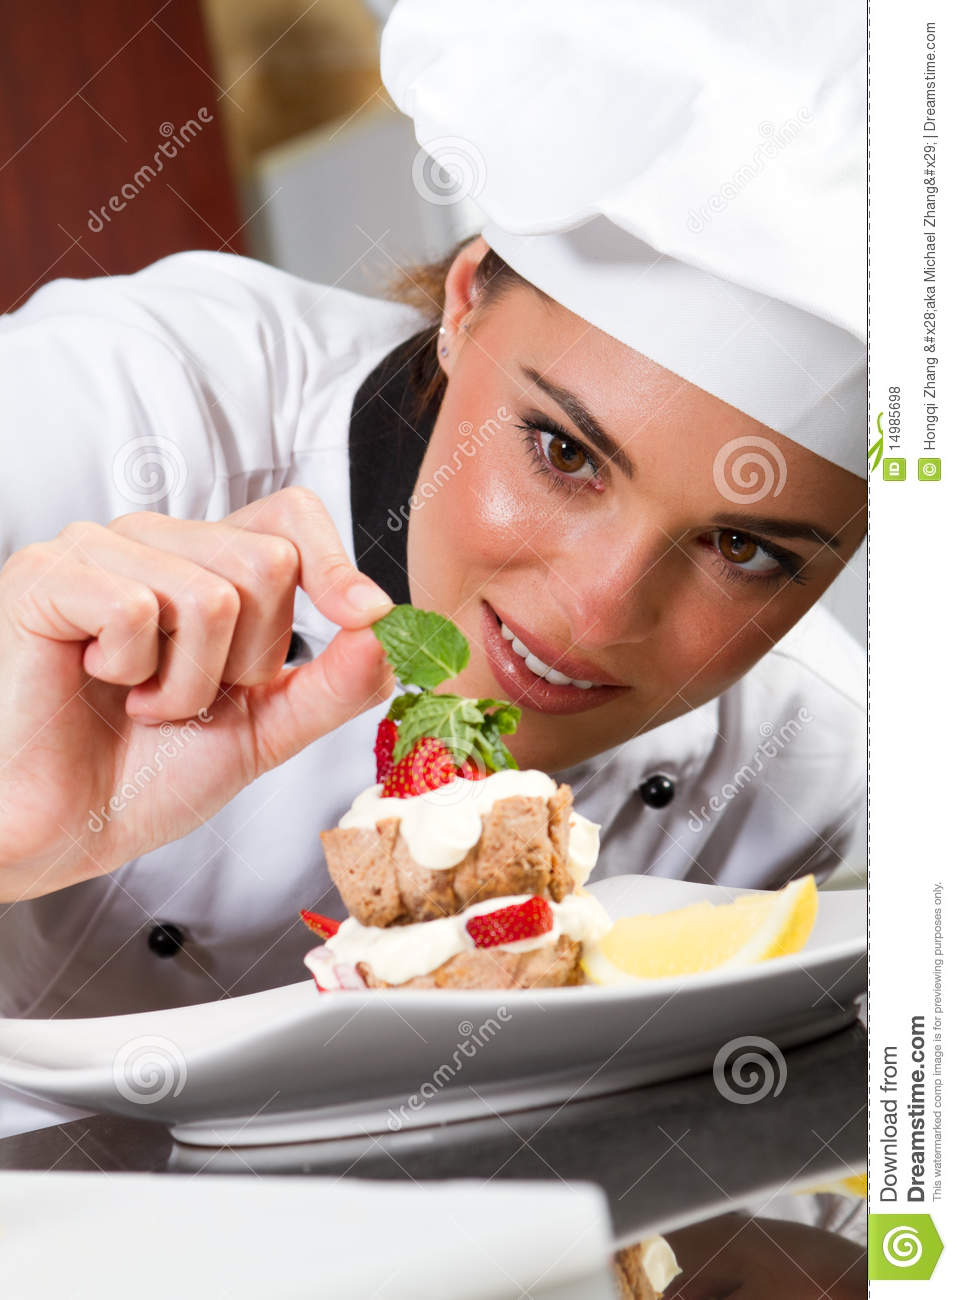 Chef decorating food stock photo. Image of eyes, hand ...